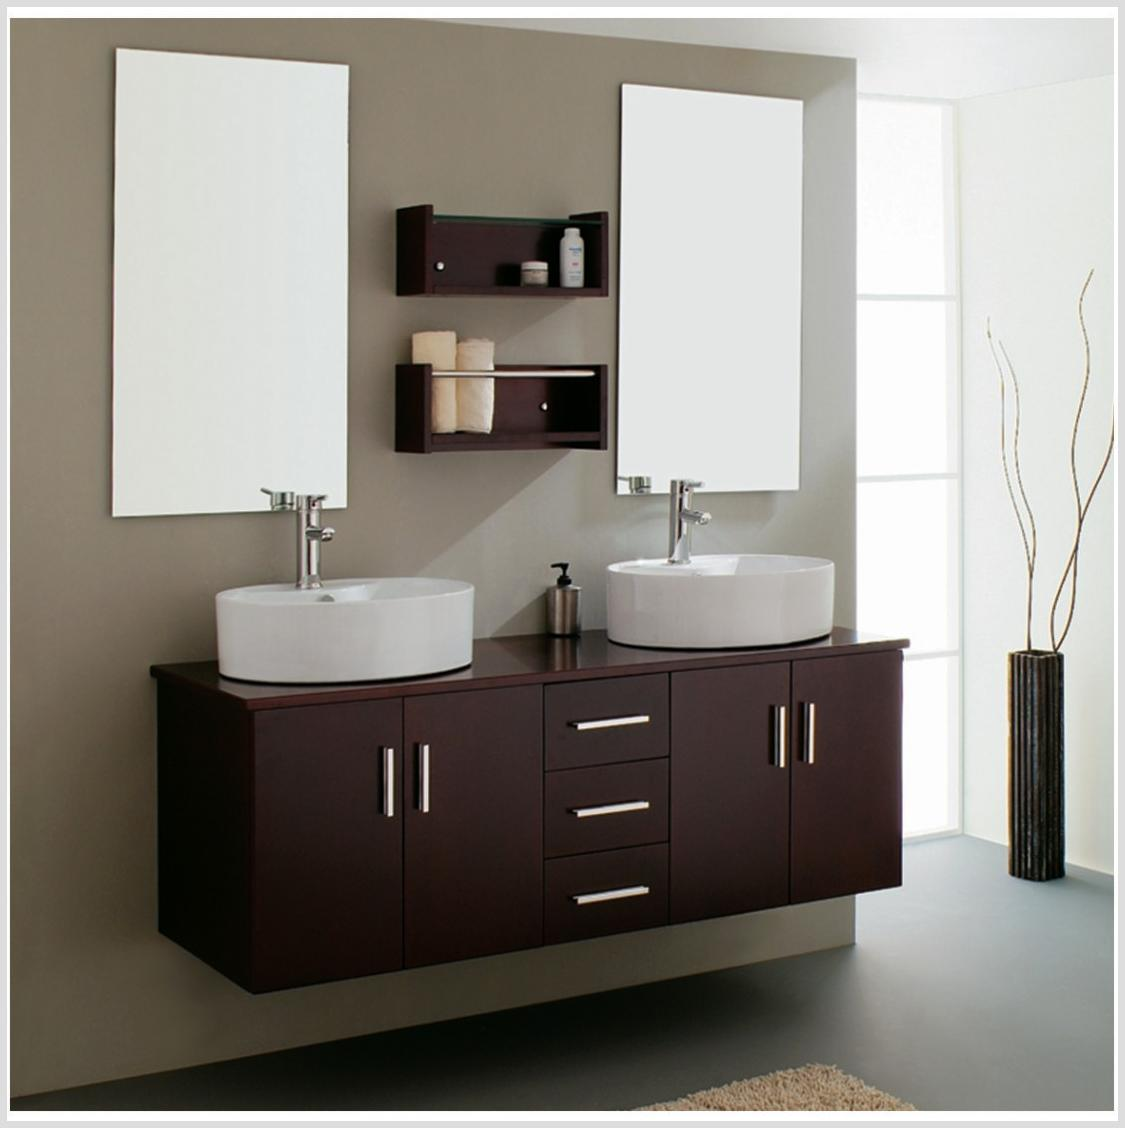 Magnificent Bathroom Vanities and Cabinets 1125 x 1128 · 74 kB · jpeg